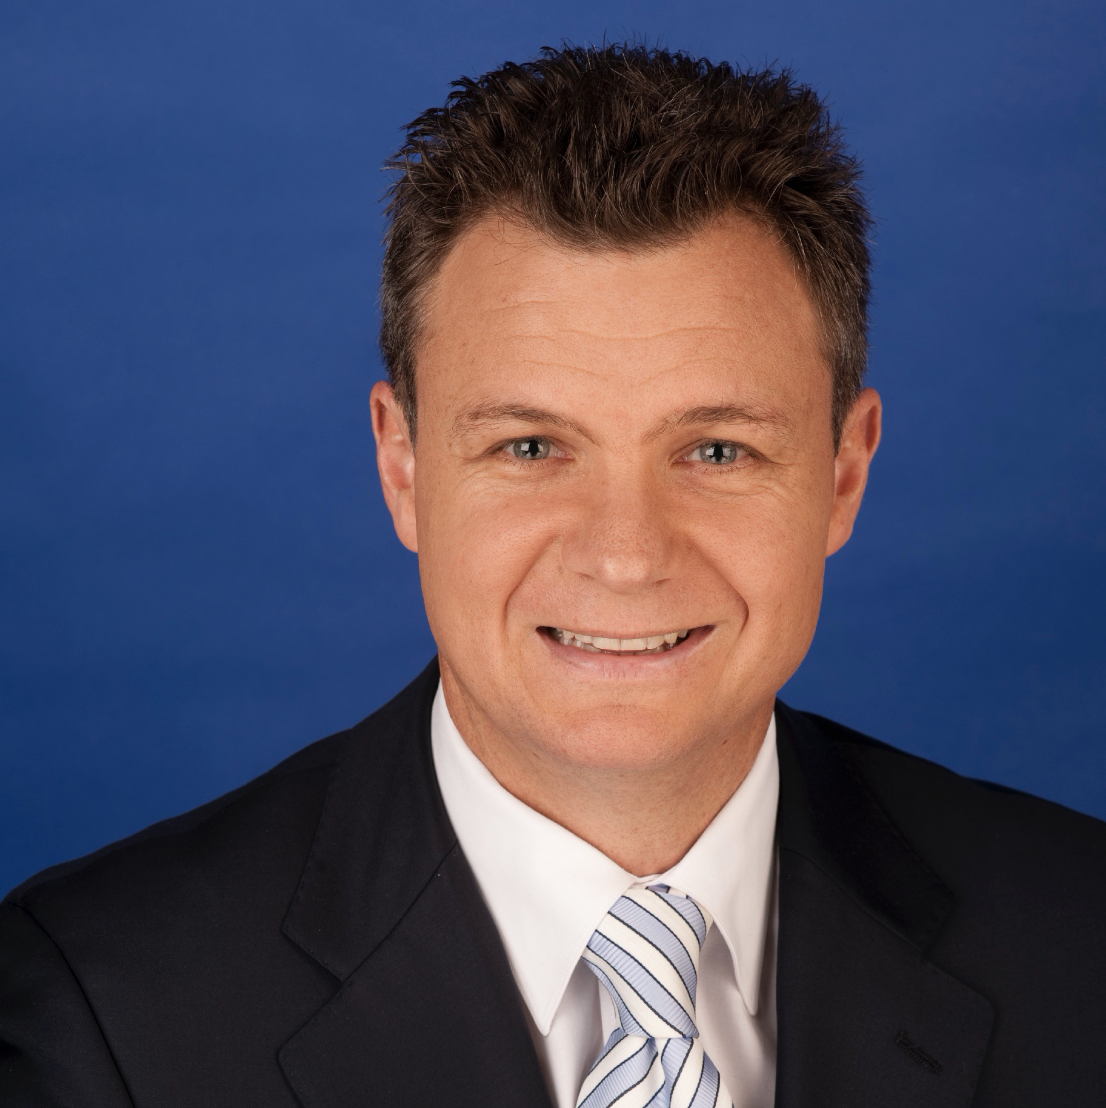 Matt Thistlethwaite (Labor) MP